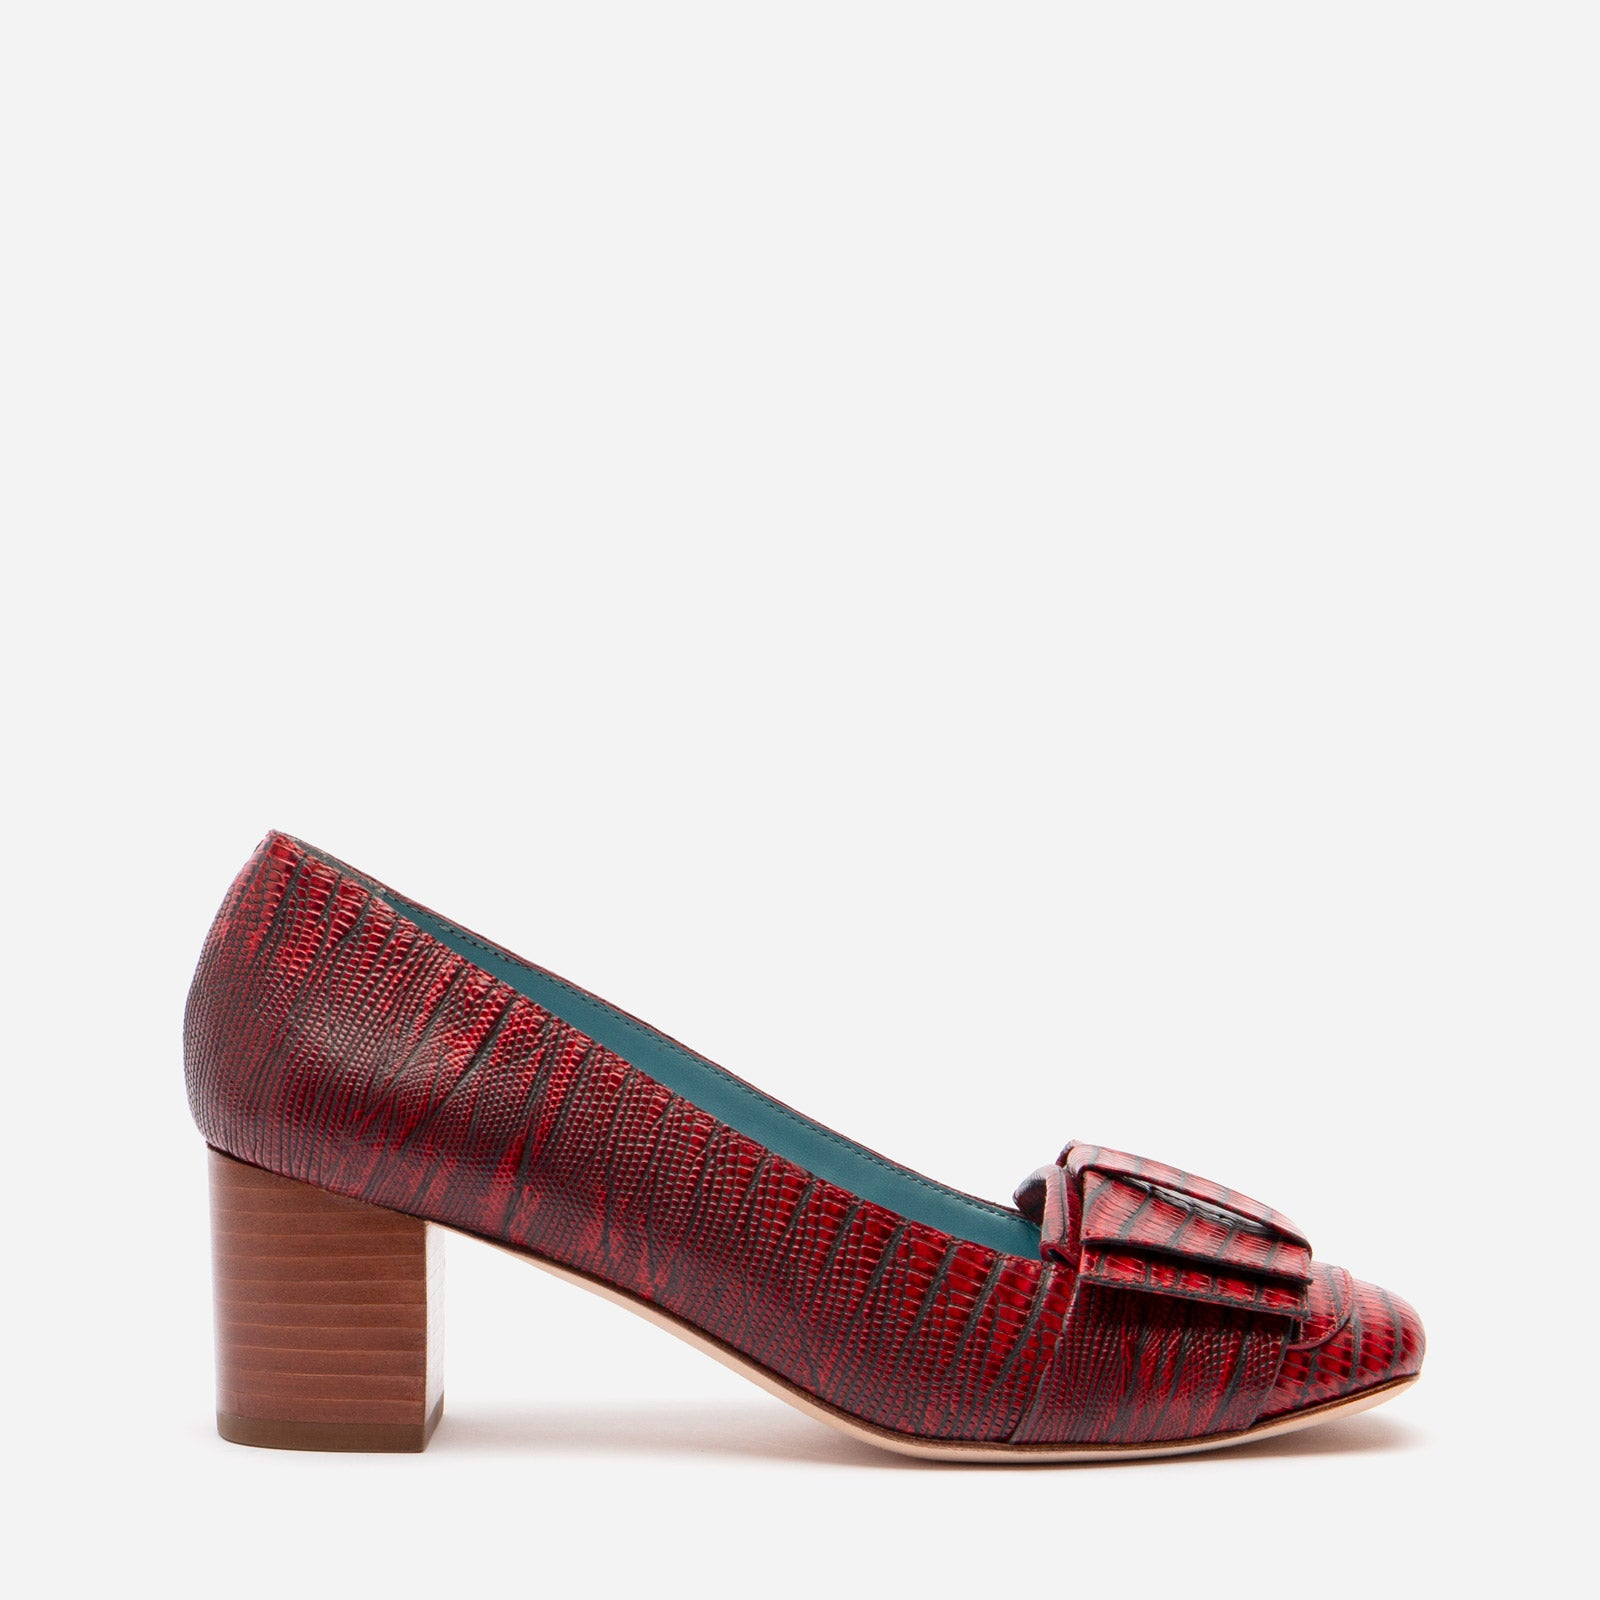 Kit Mary Jane Heels Lizard Printed Leather Red - Frances Valentine